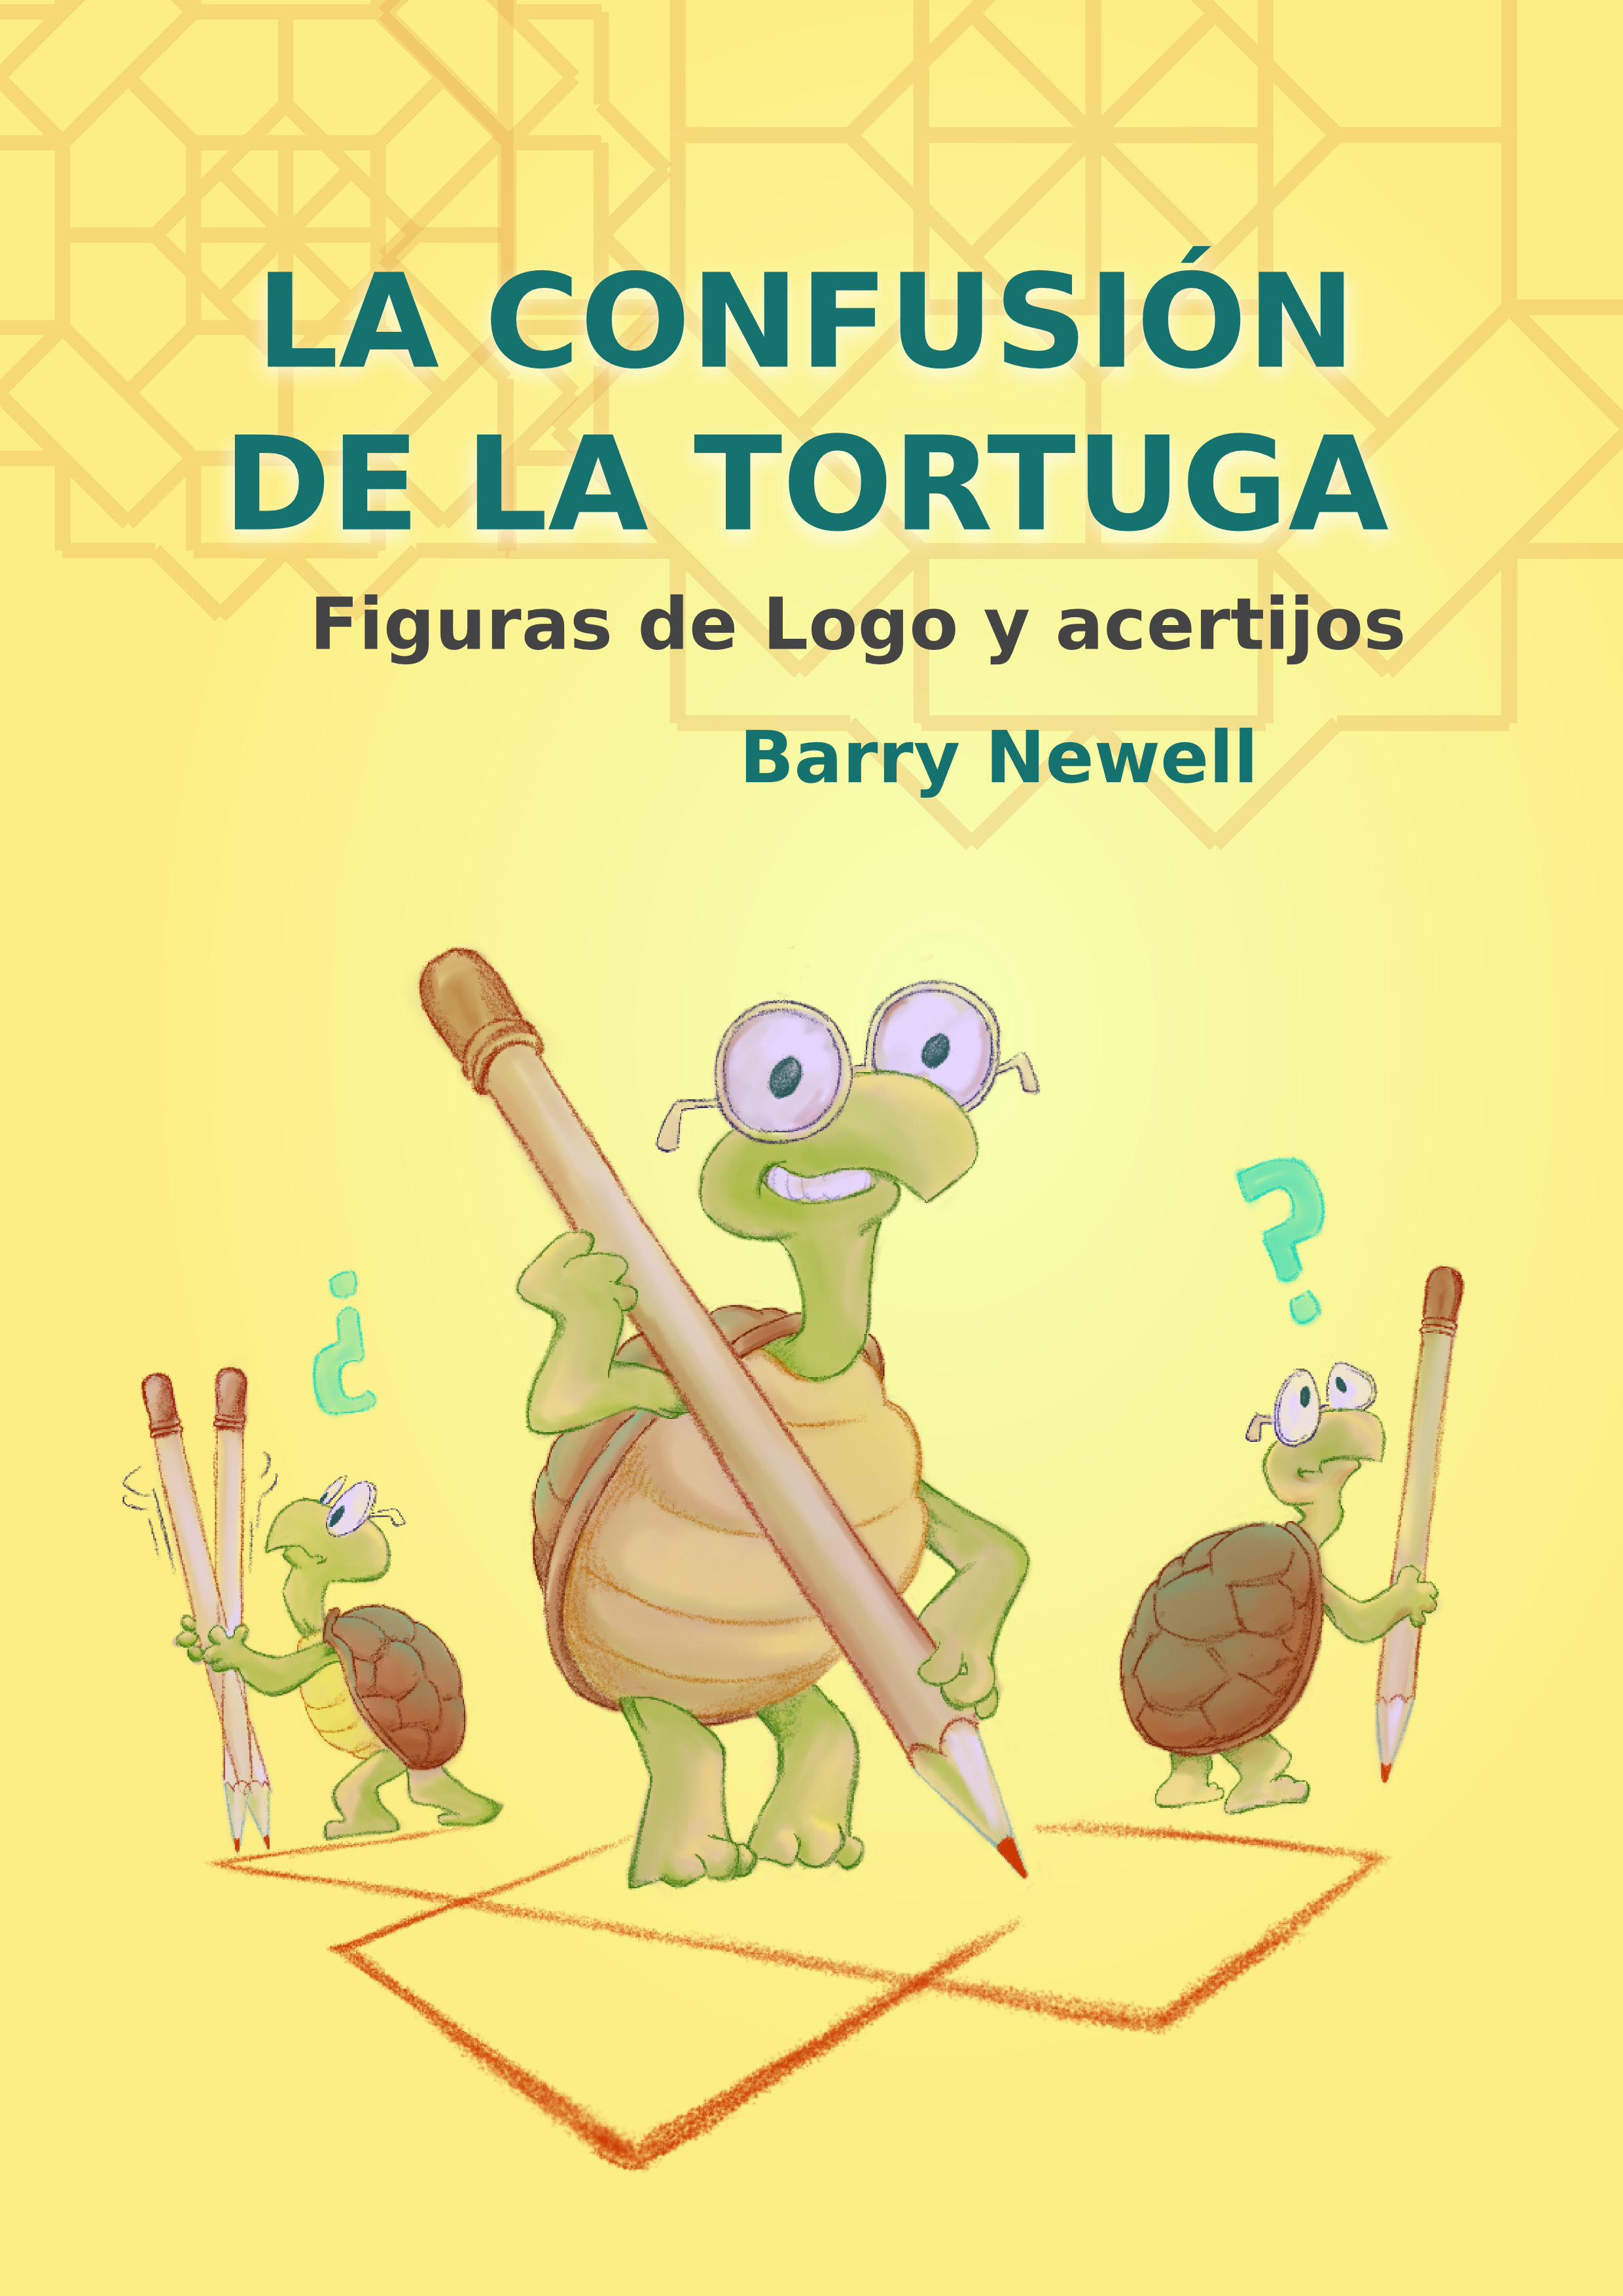 http://humitos.files.wordpress.com/2012/10/cover.png